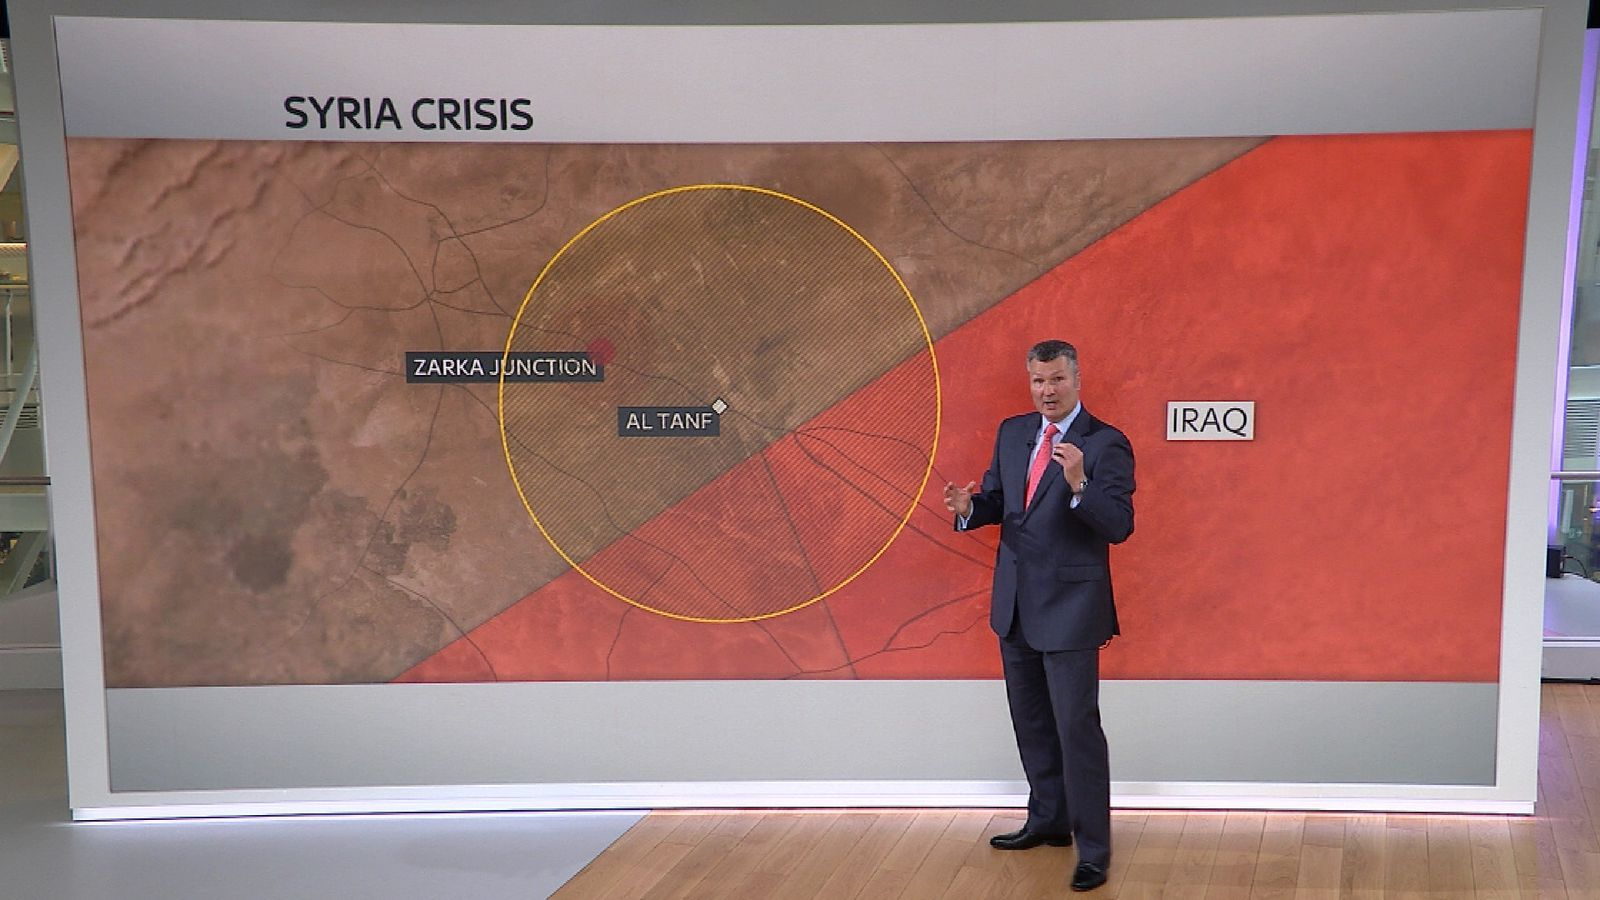 David Bowden explains the latest military skirmishes on the Syrian border